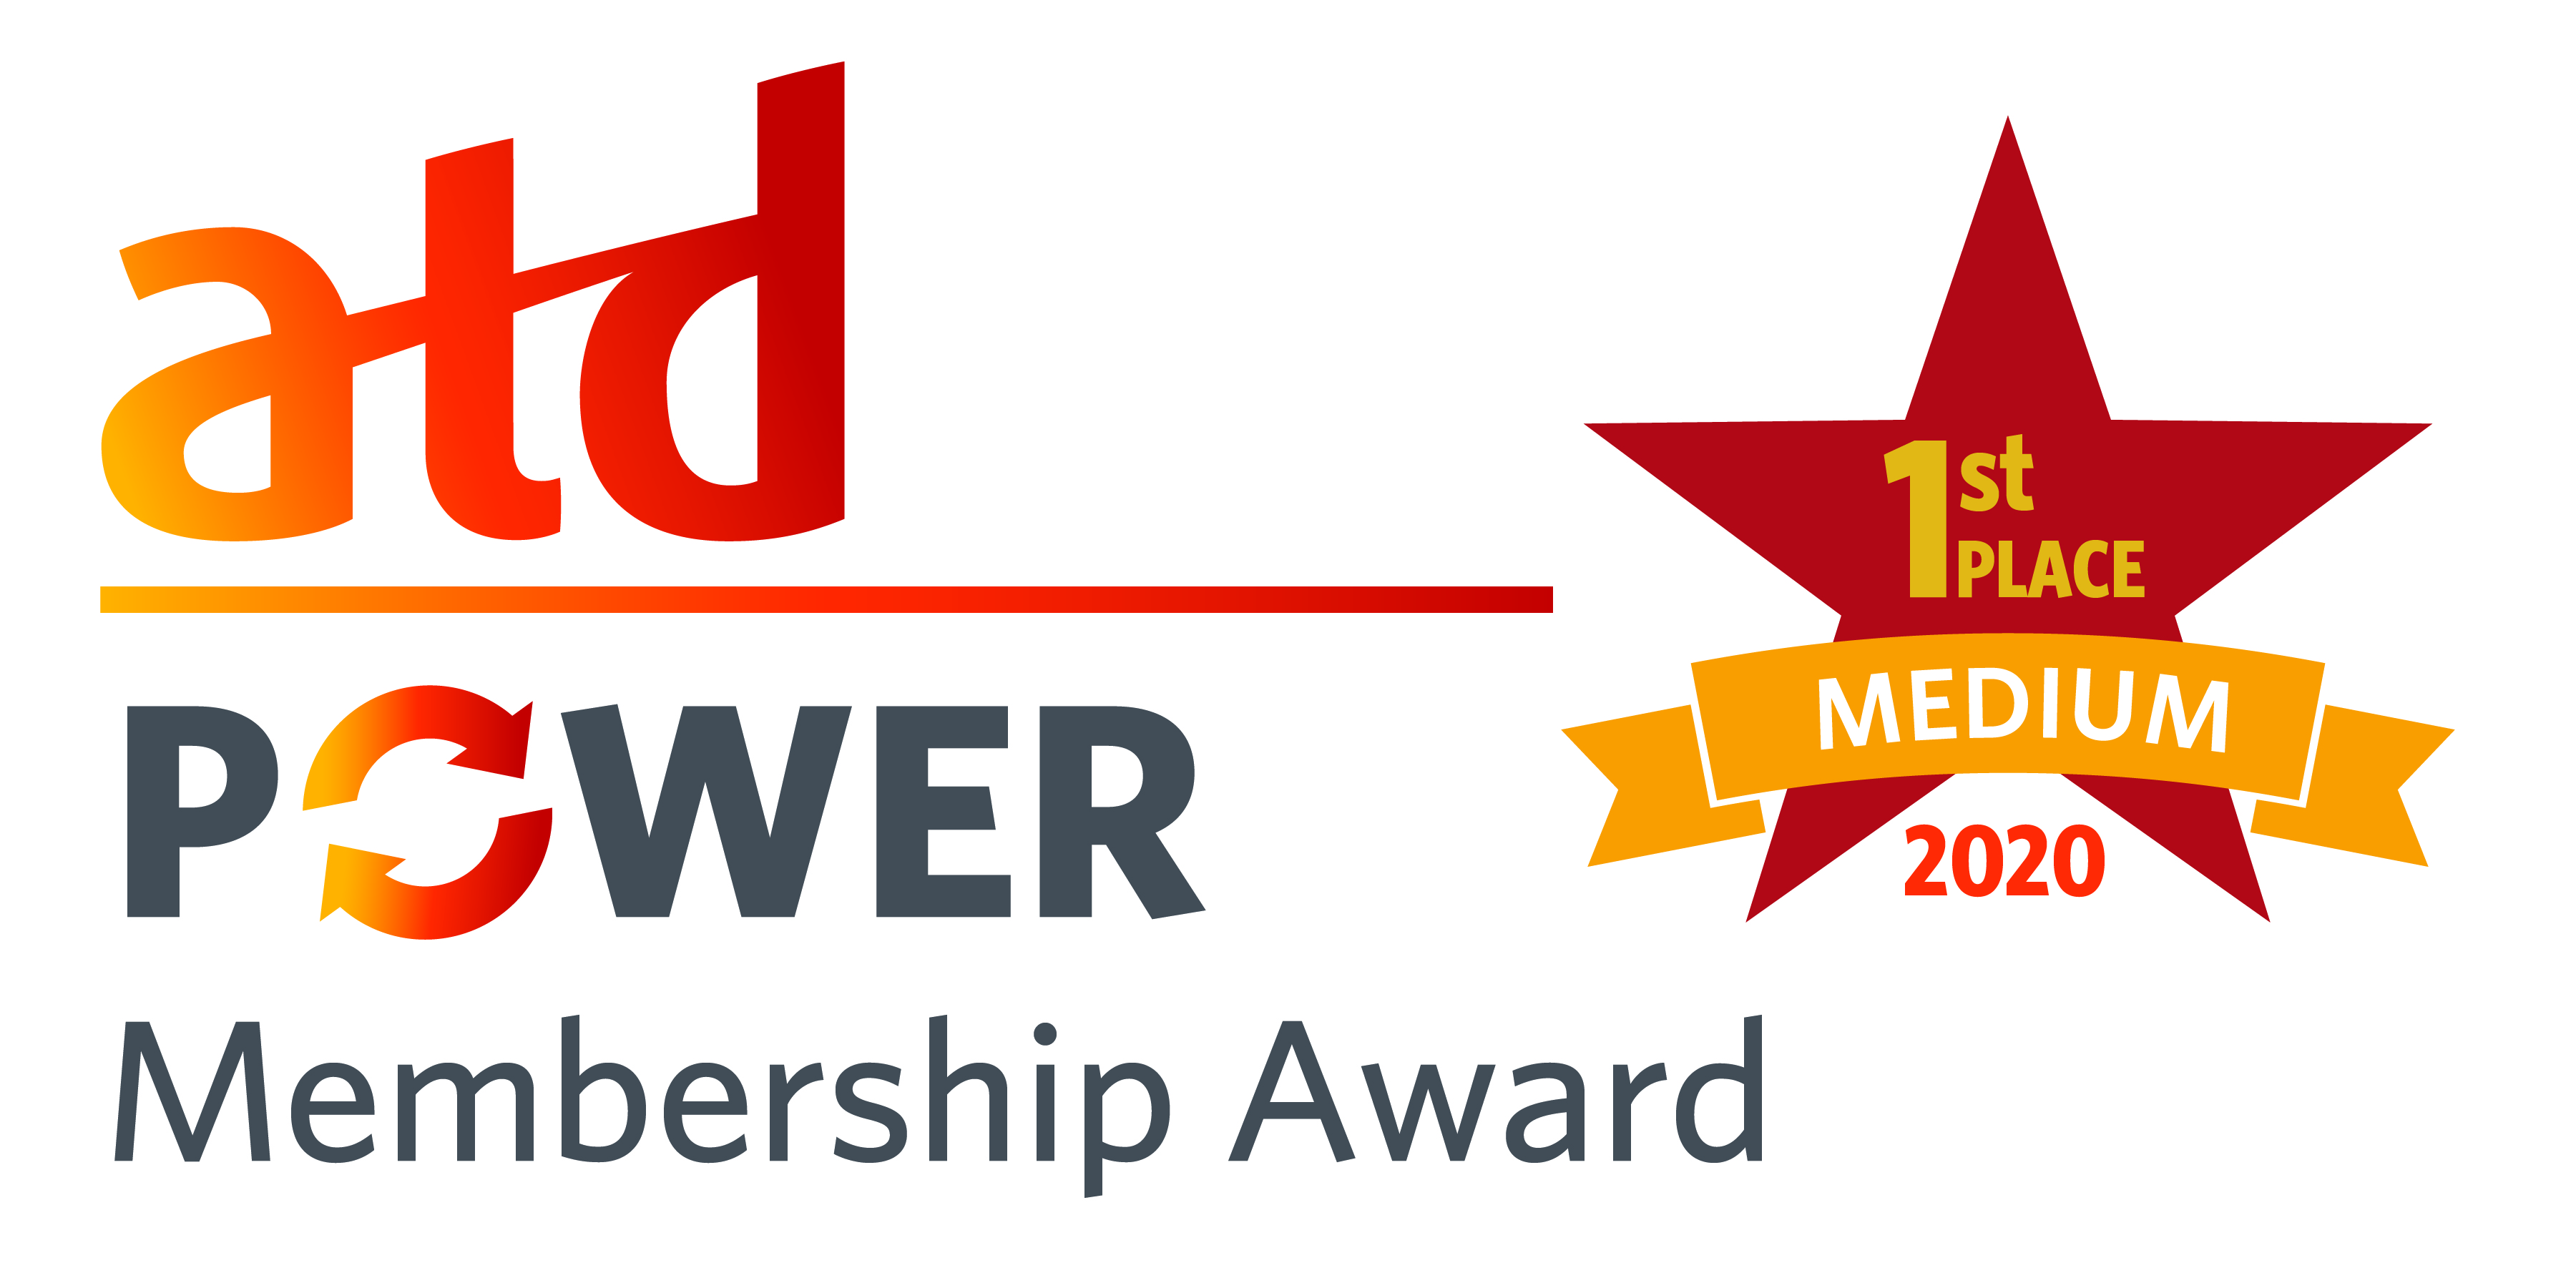 Power Membership Award